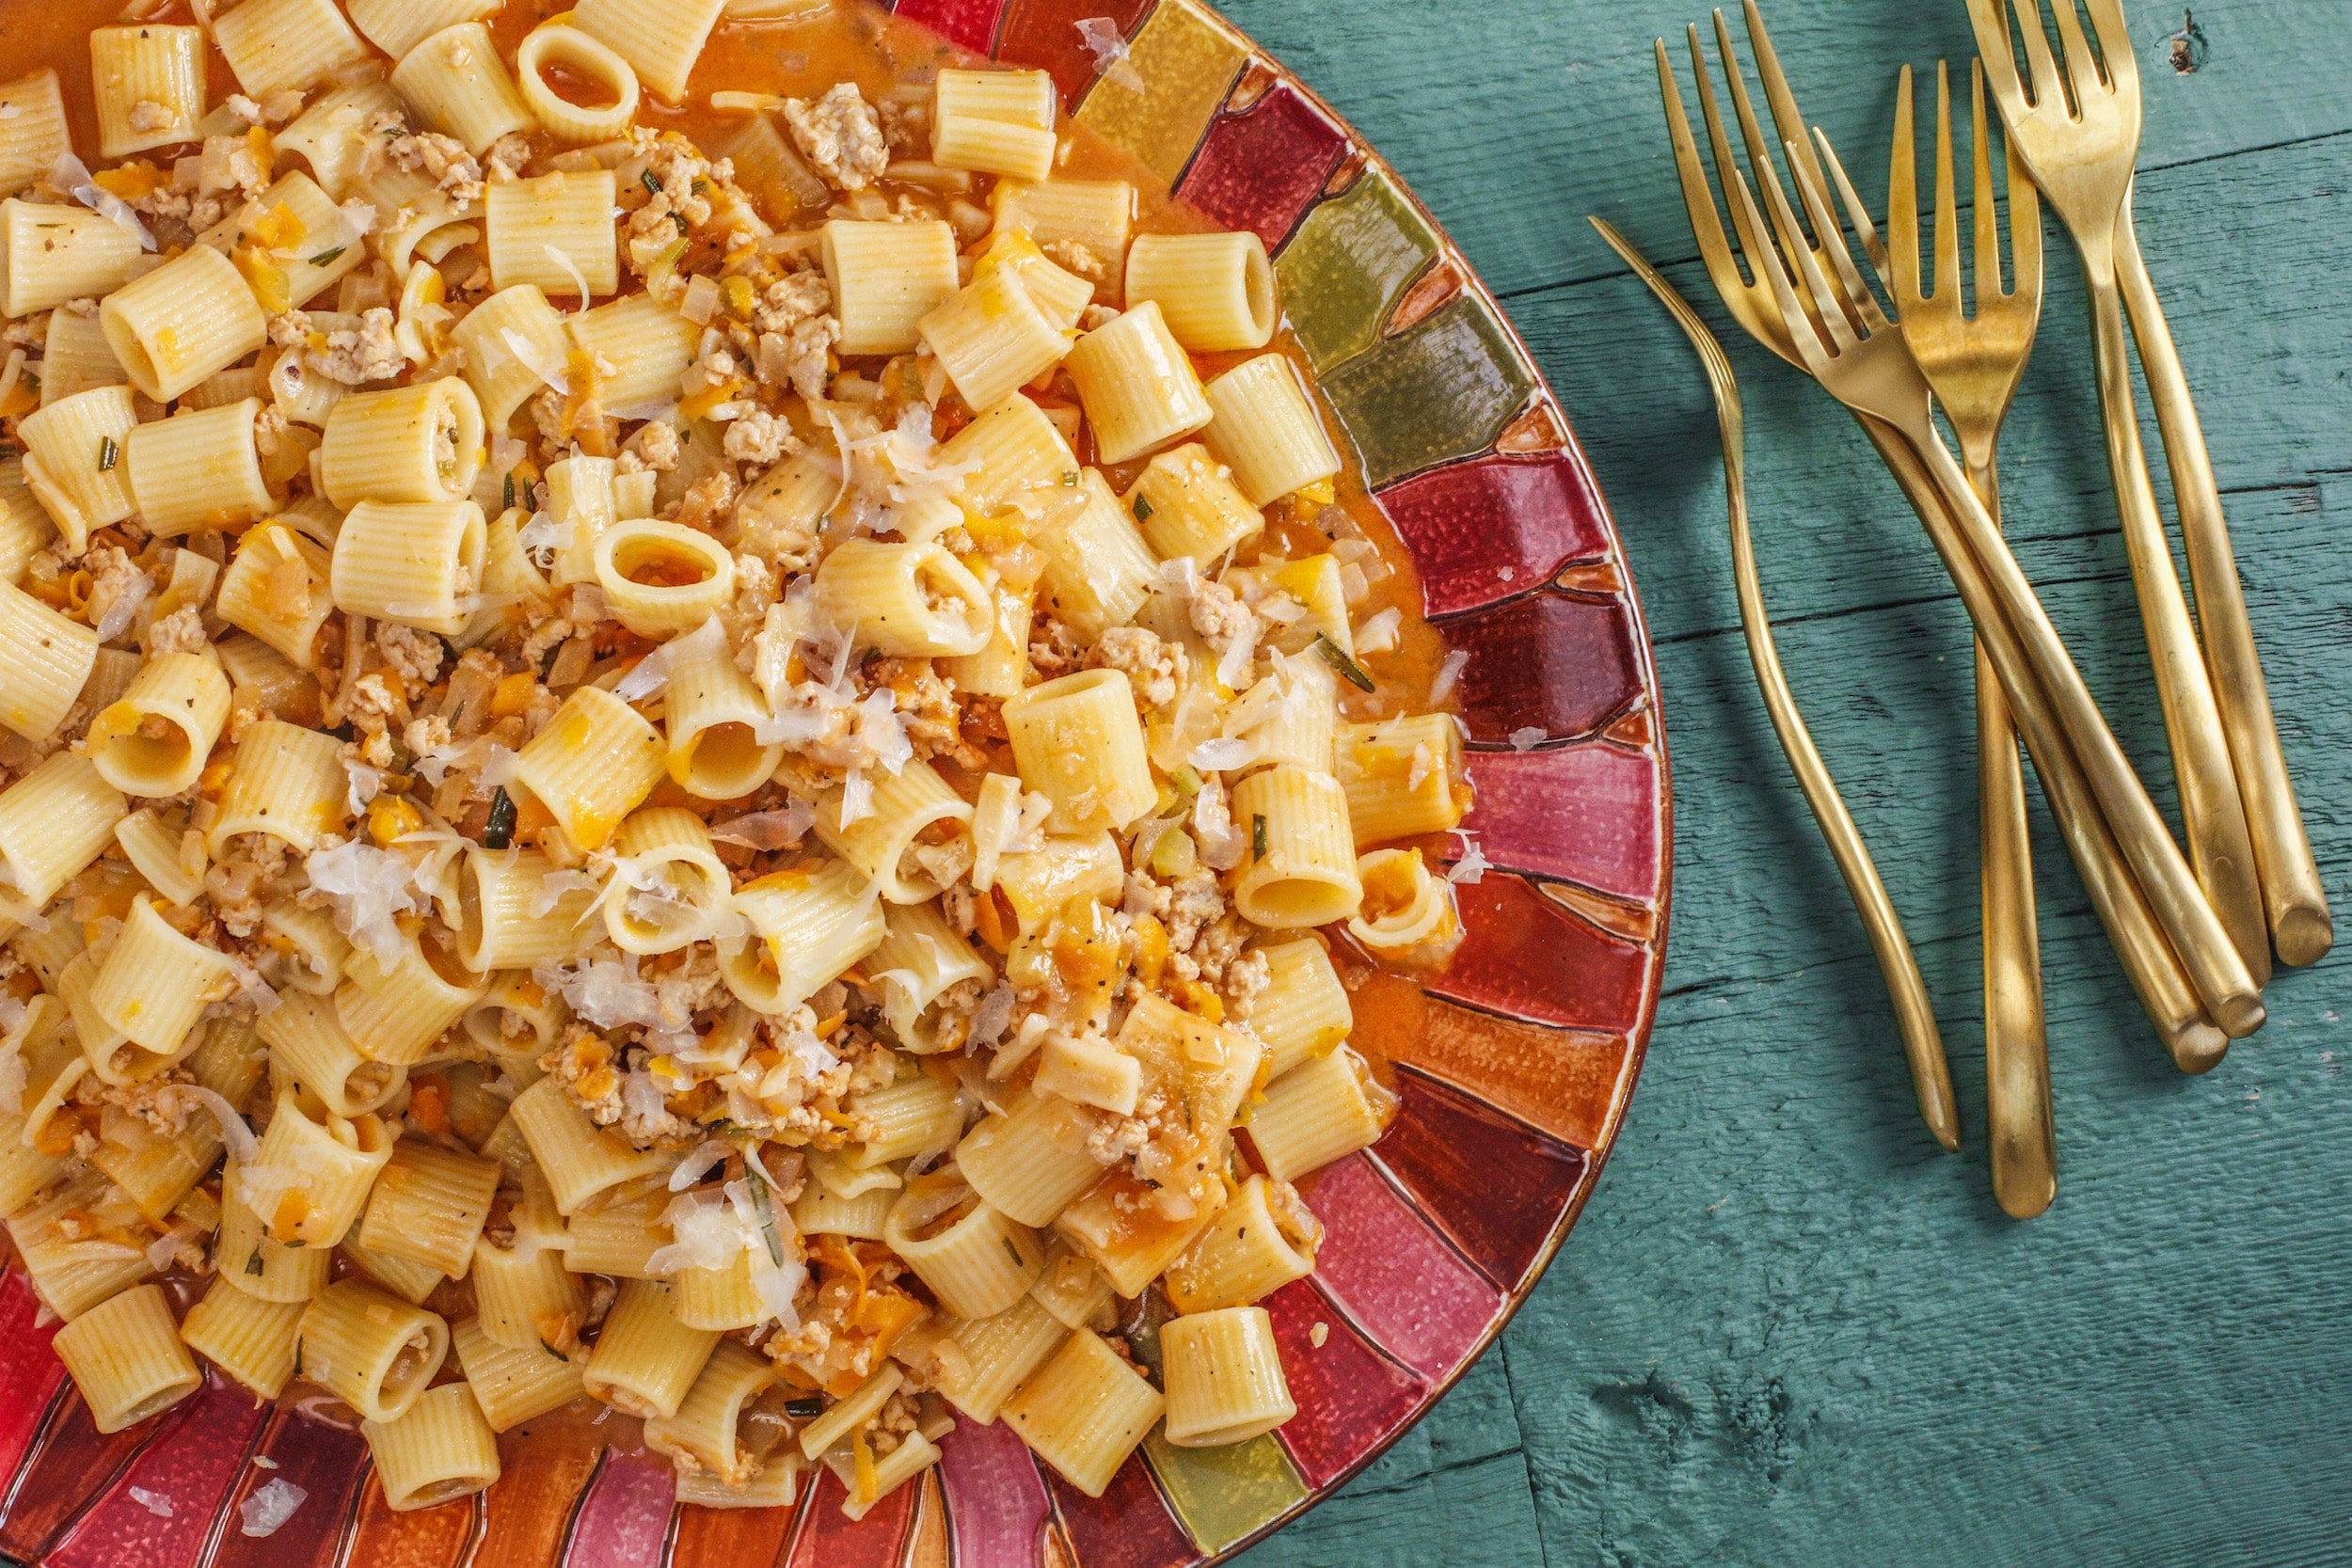 Rachael's Chicken and Vegetable Ragu with Rigatoni